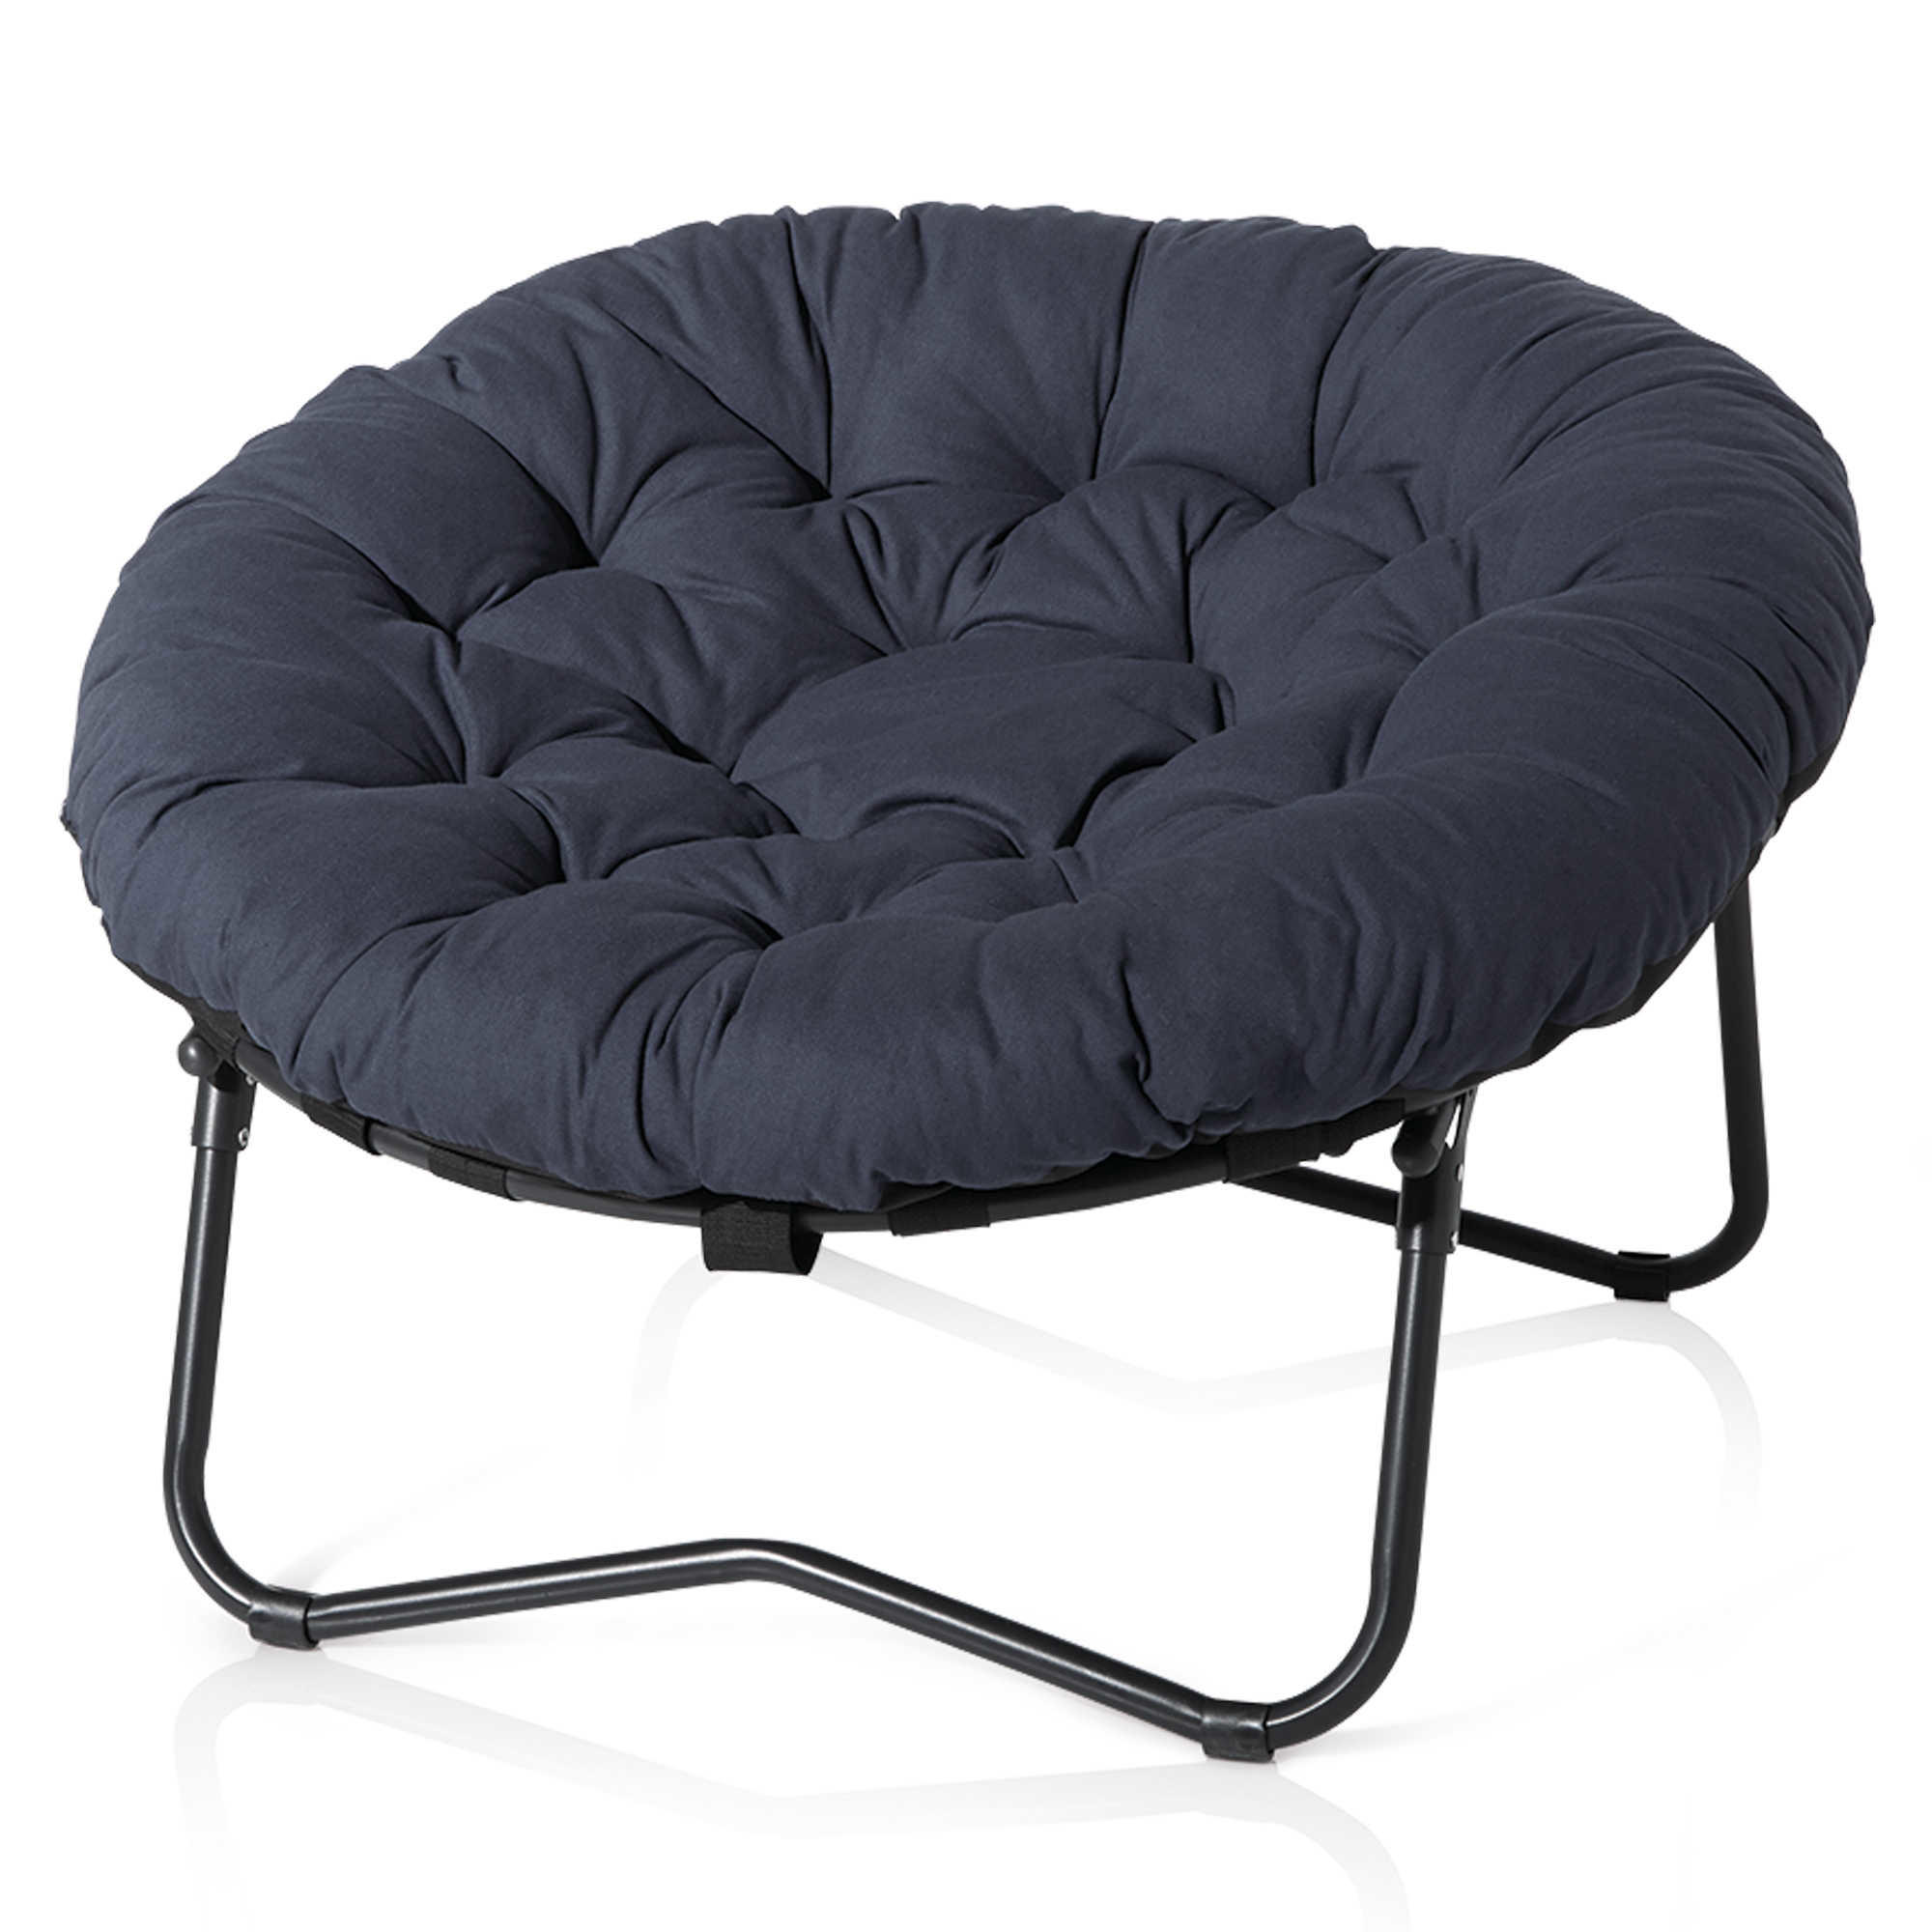 folding club chair bed bath beyond gas fire pit and set foldable oversized papasan in from